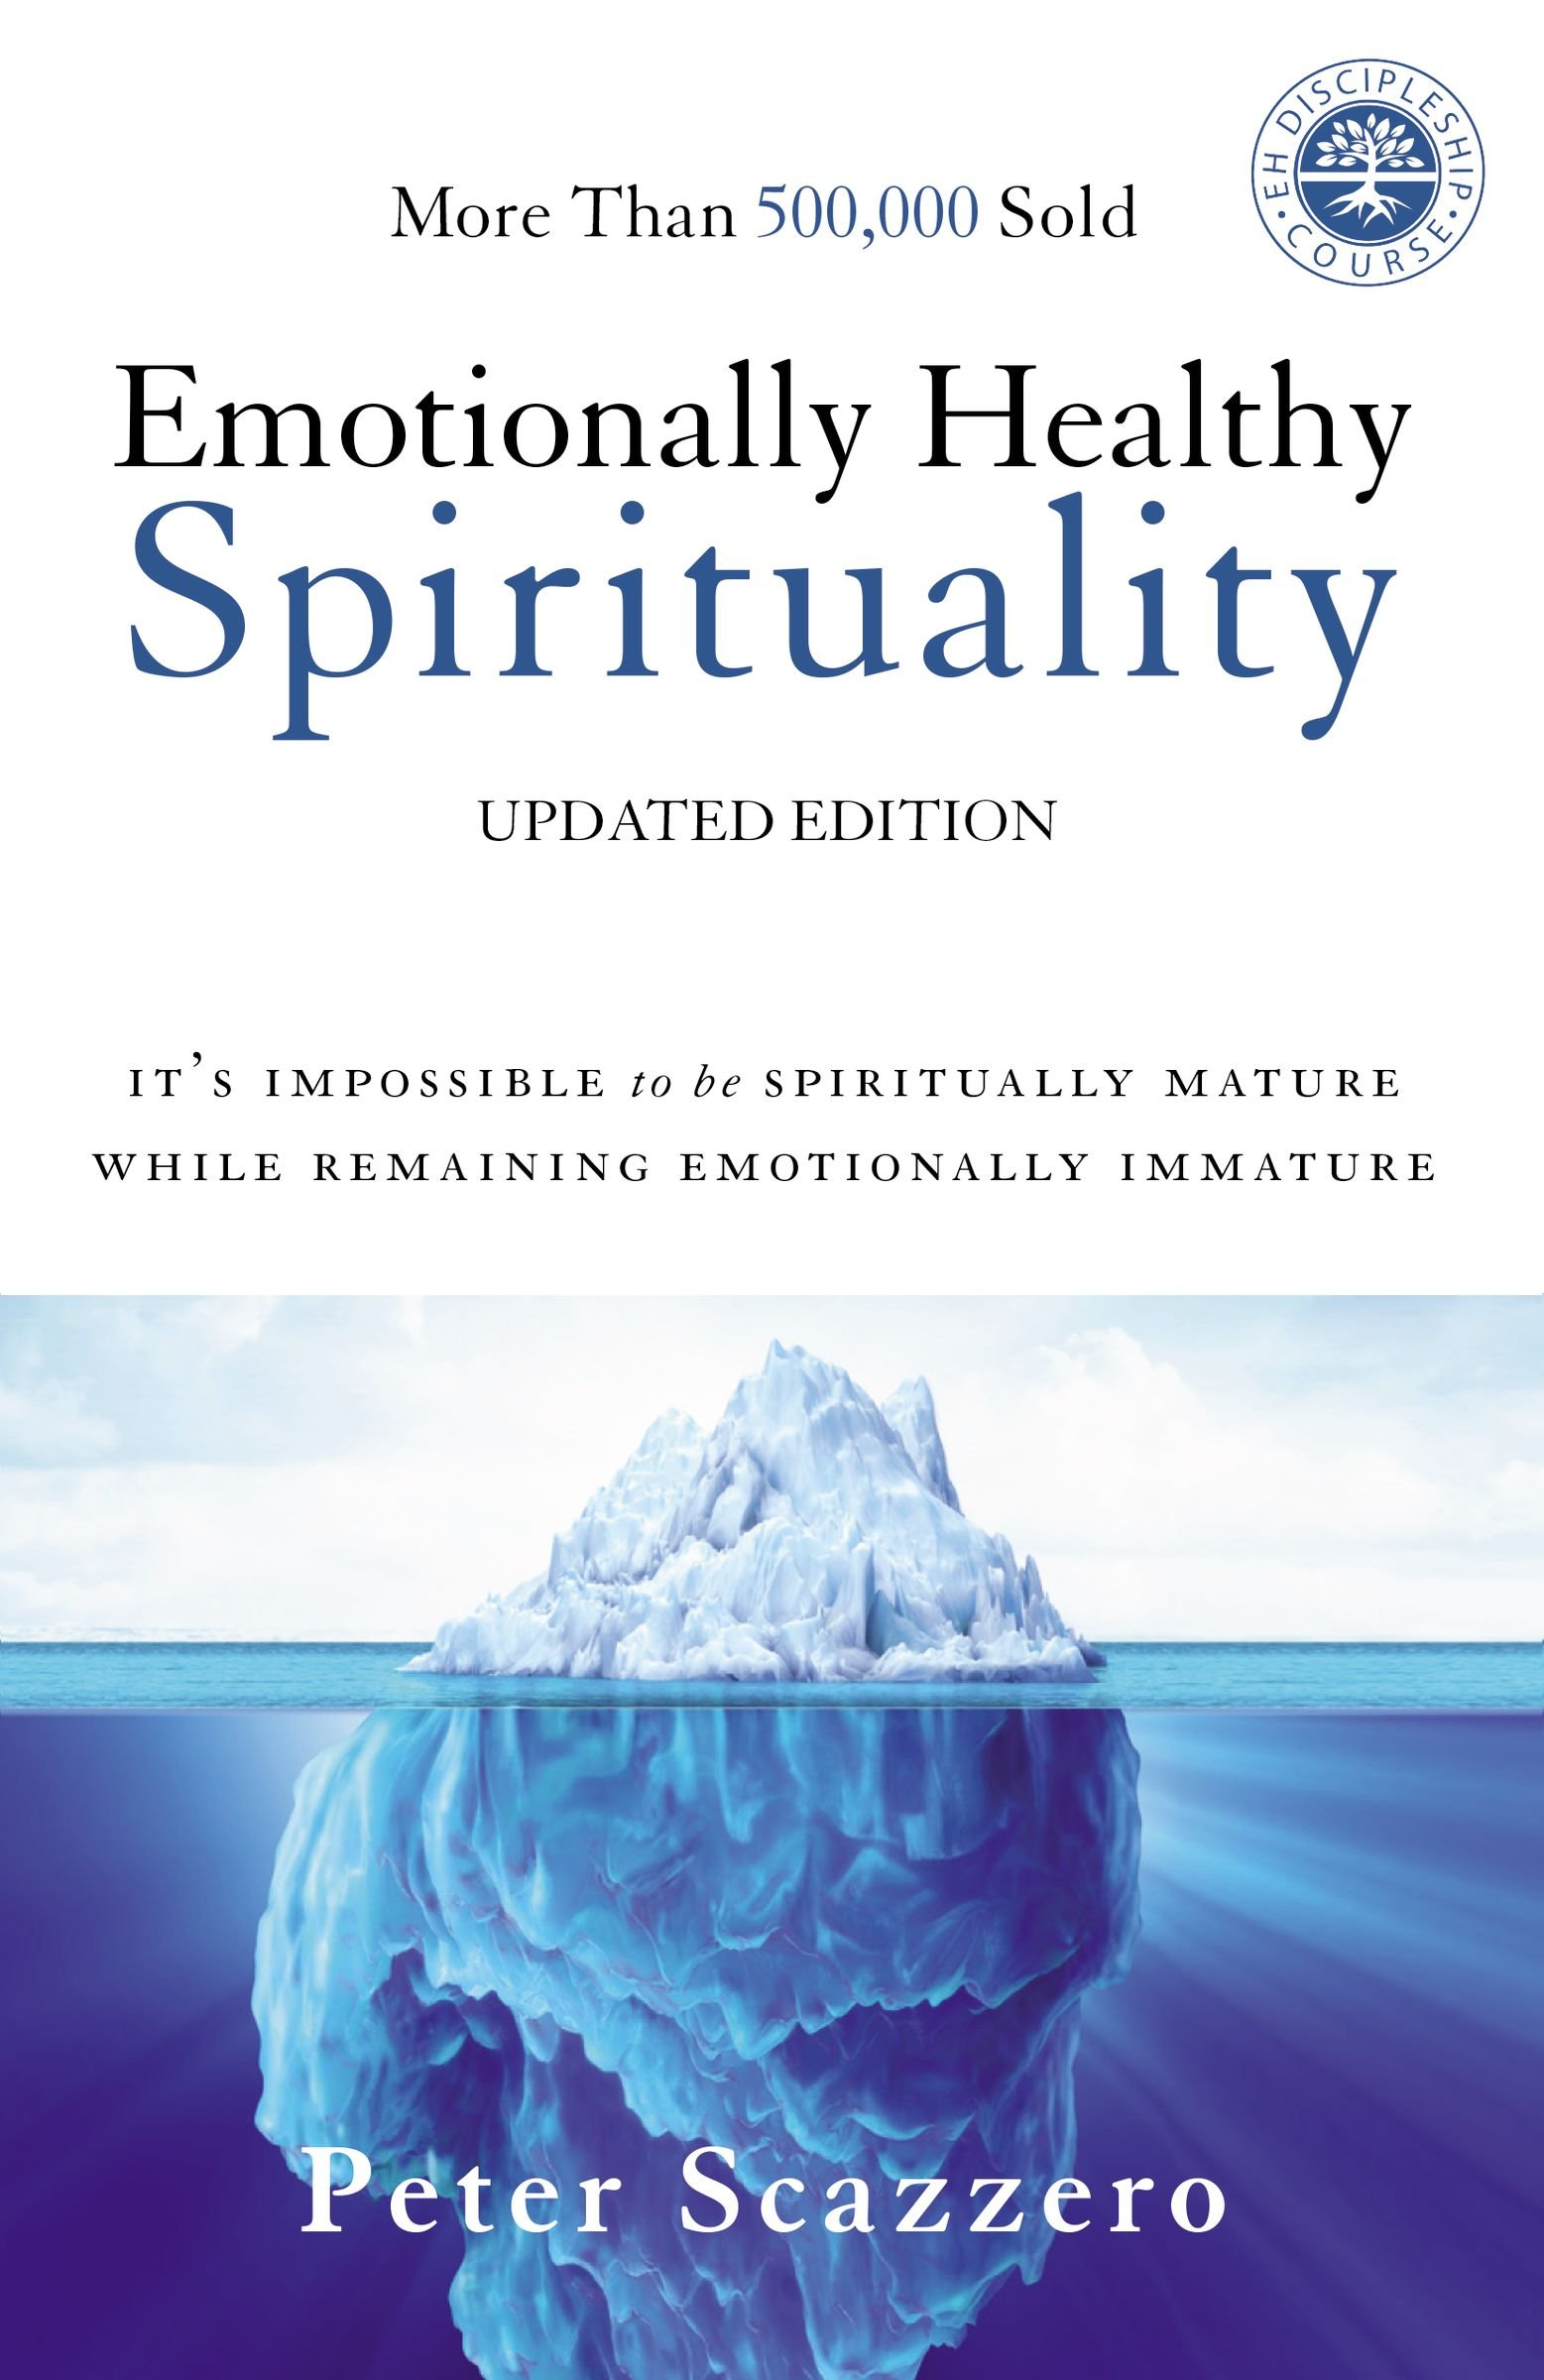 Emotionally Healthy Spirituality: It's Impossible to Be Spiritually Mature, While Remaining Emotionally Immature by HarperCollins Christian Pub.